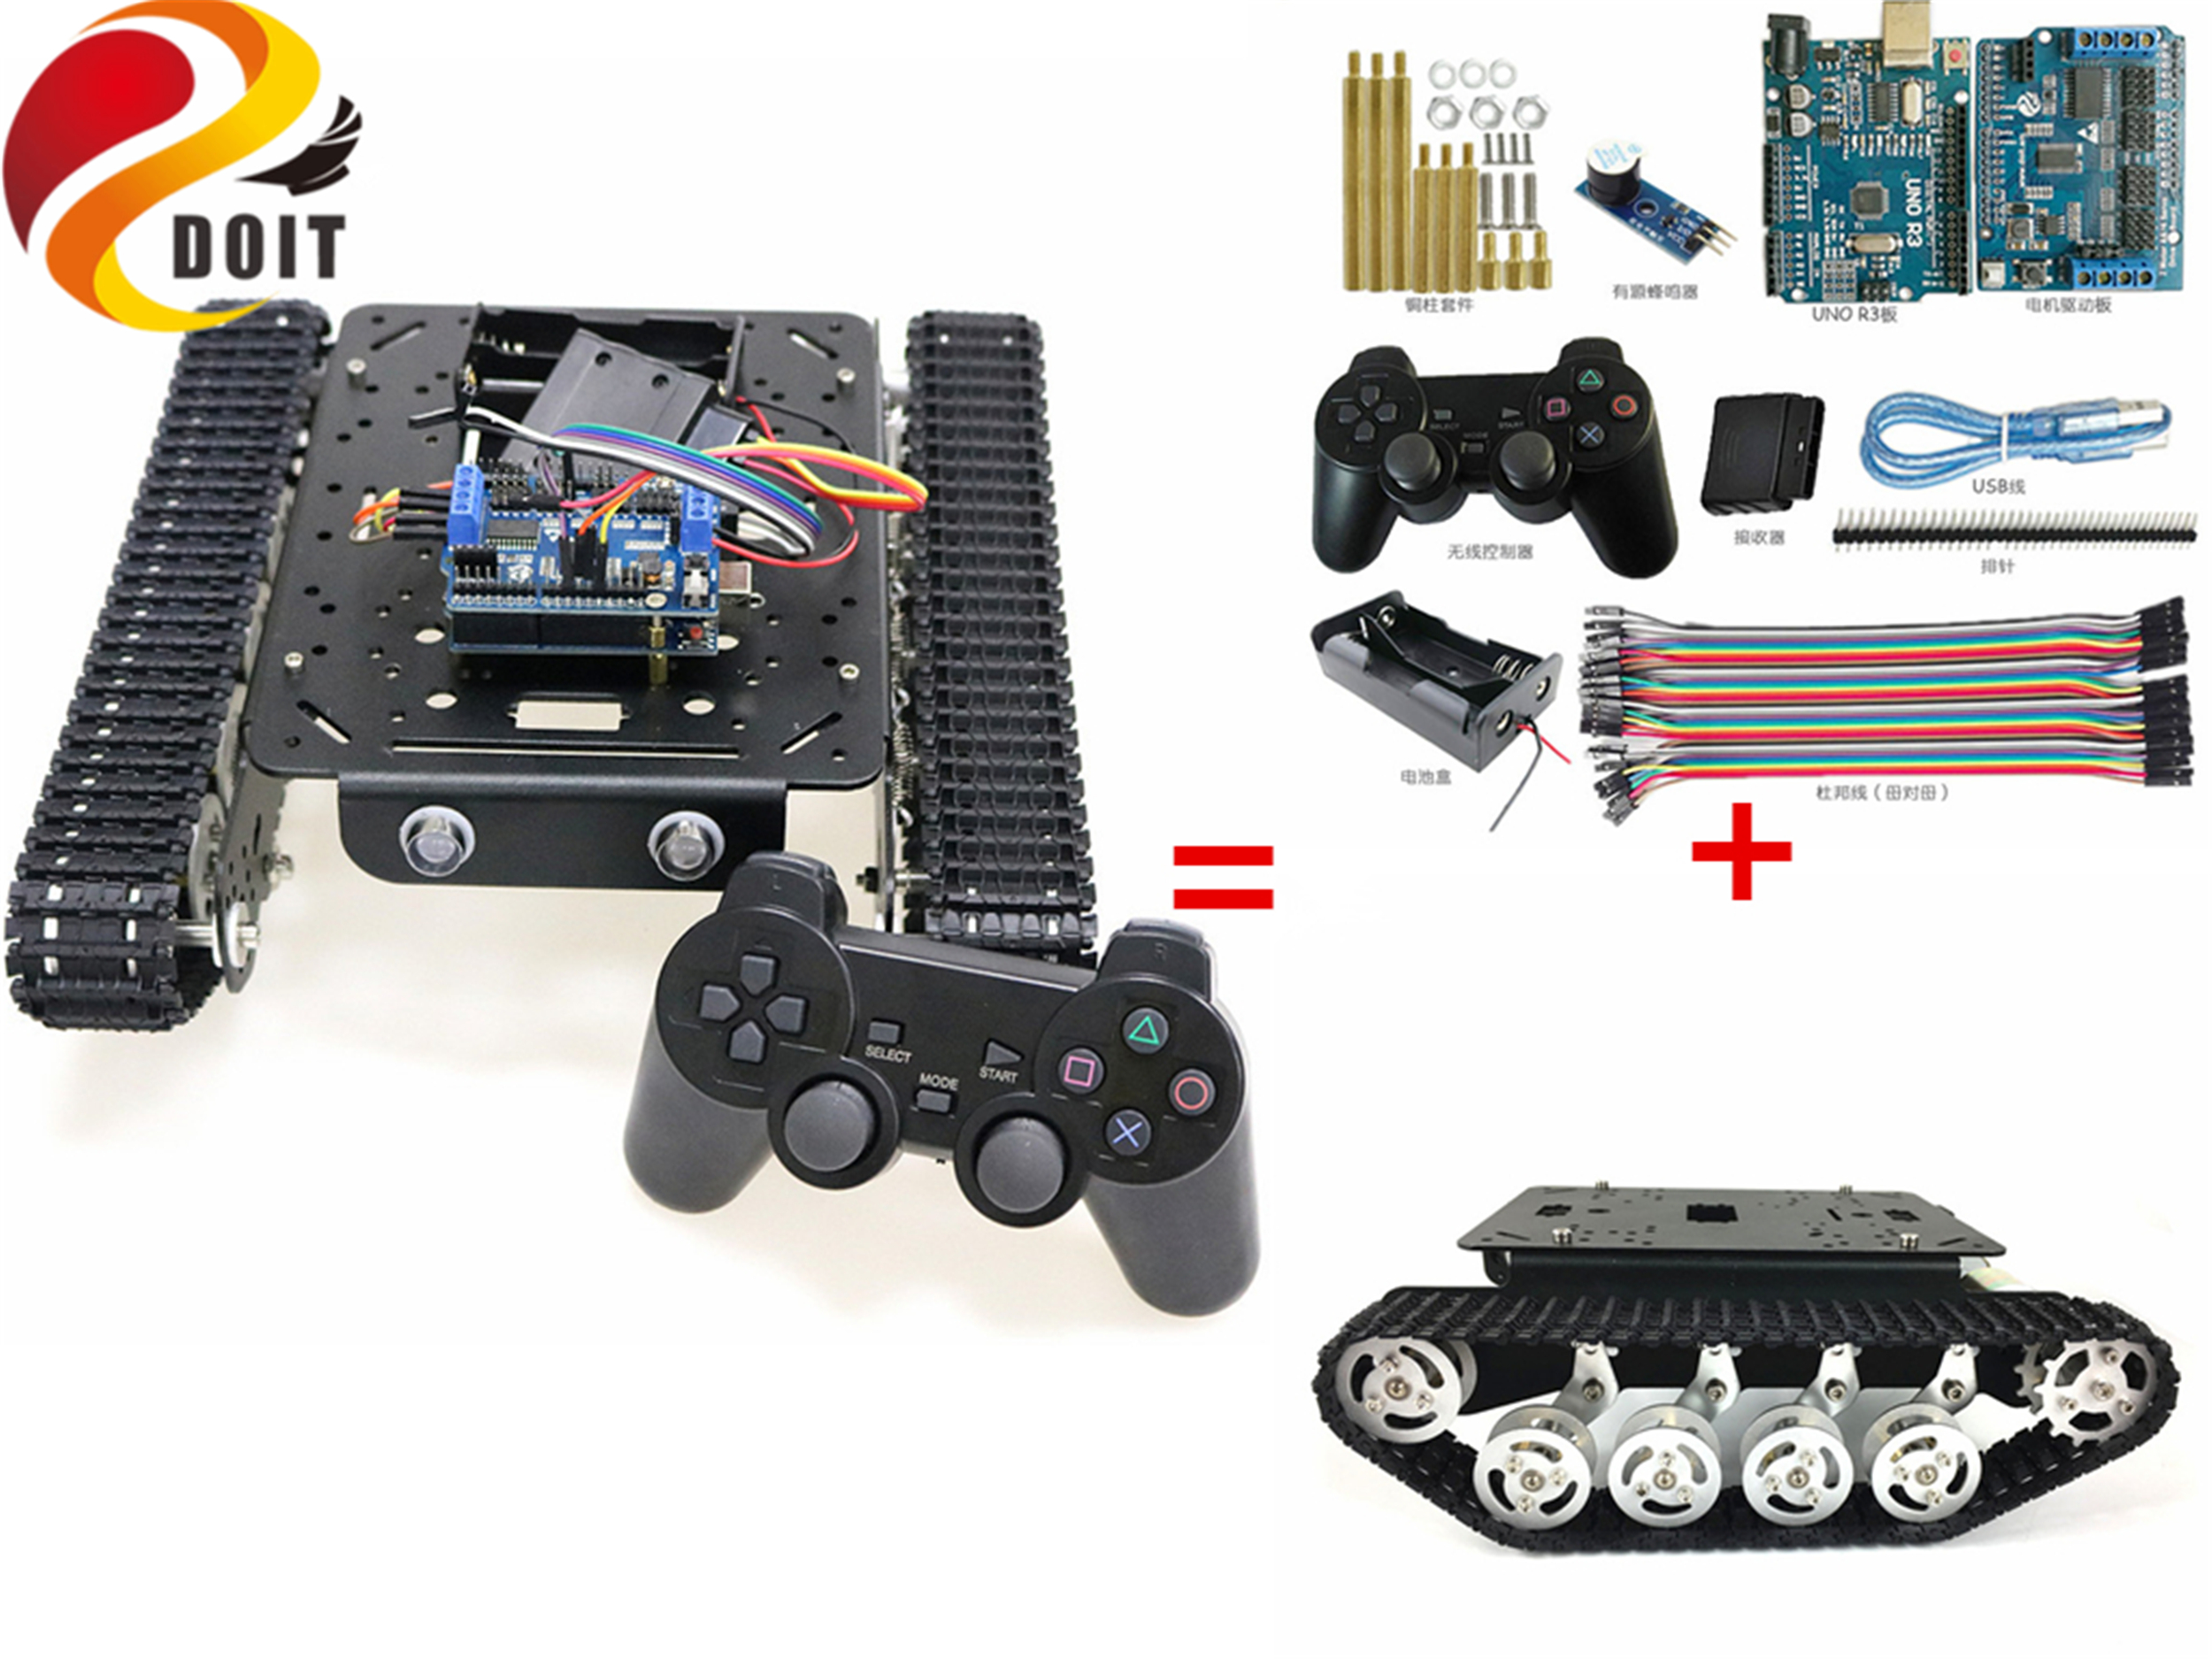 SZDOIT PS2 Gamepad Handle Control Metal <font><b>TS100</b></font> Tracked Shock Absorbing <font><b>Tank</b></font> Chassis Kit Crawler RC Robot Motor DIY For Arduino image